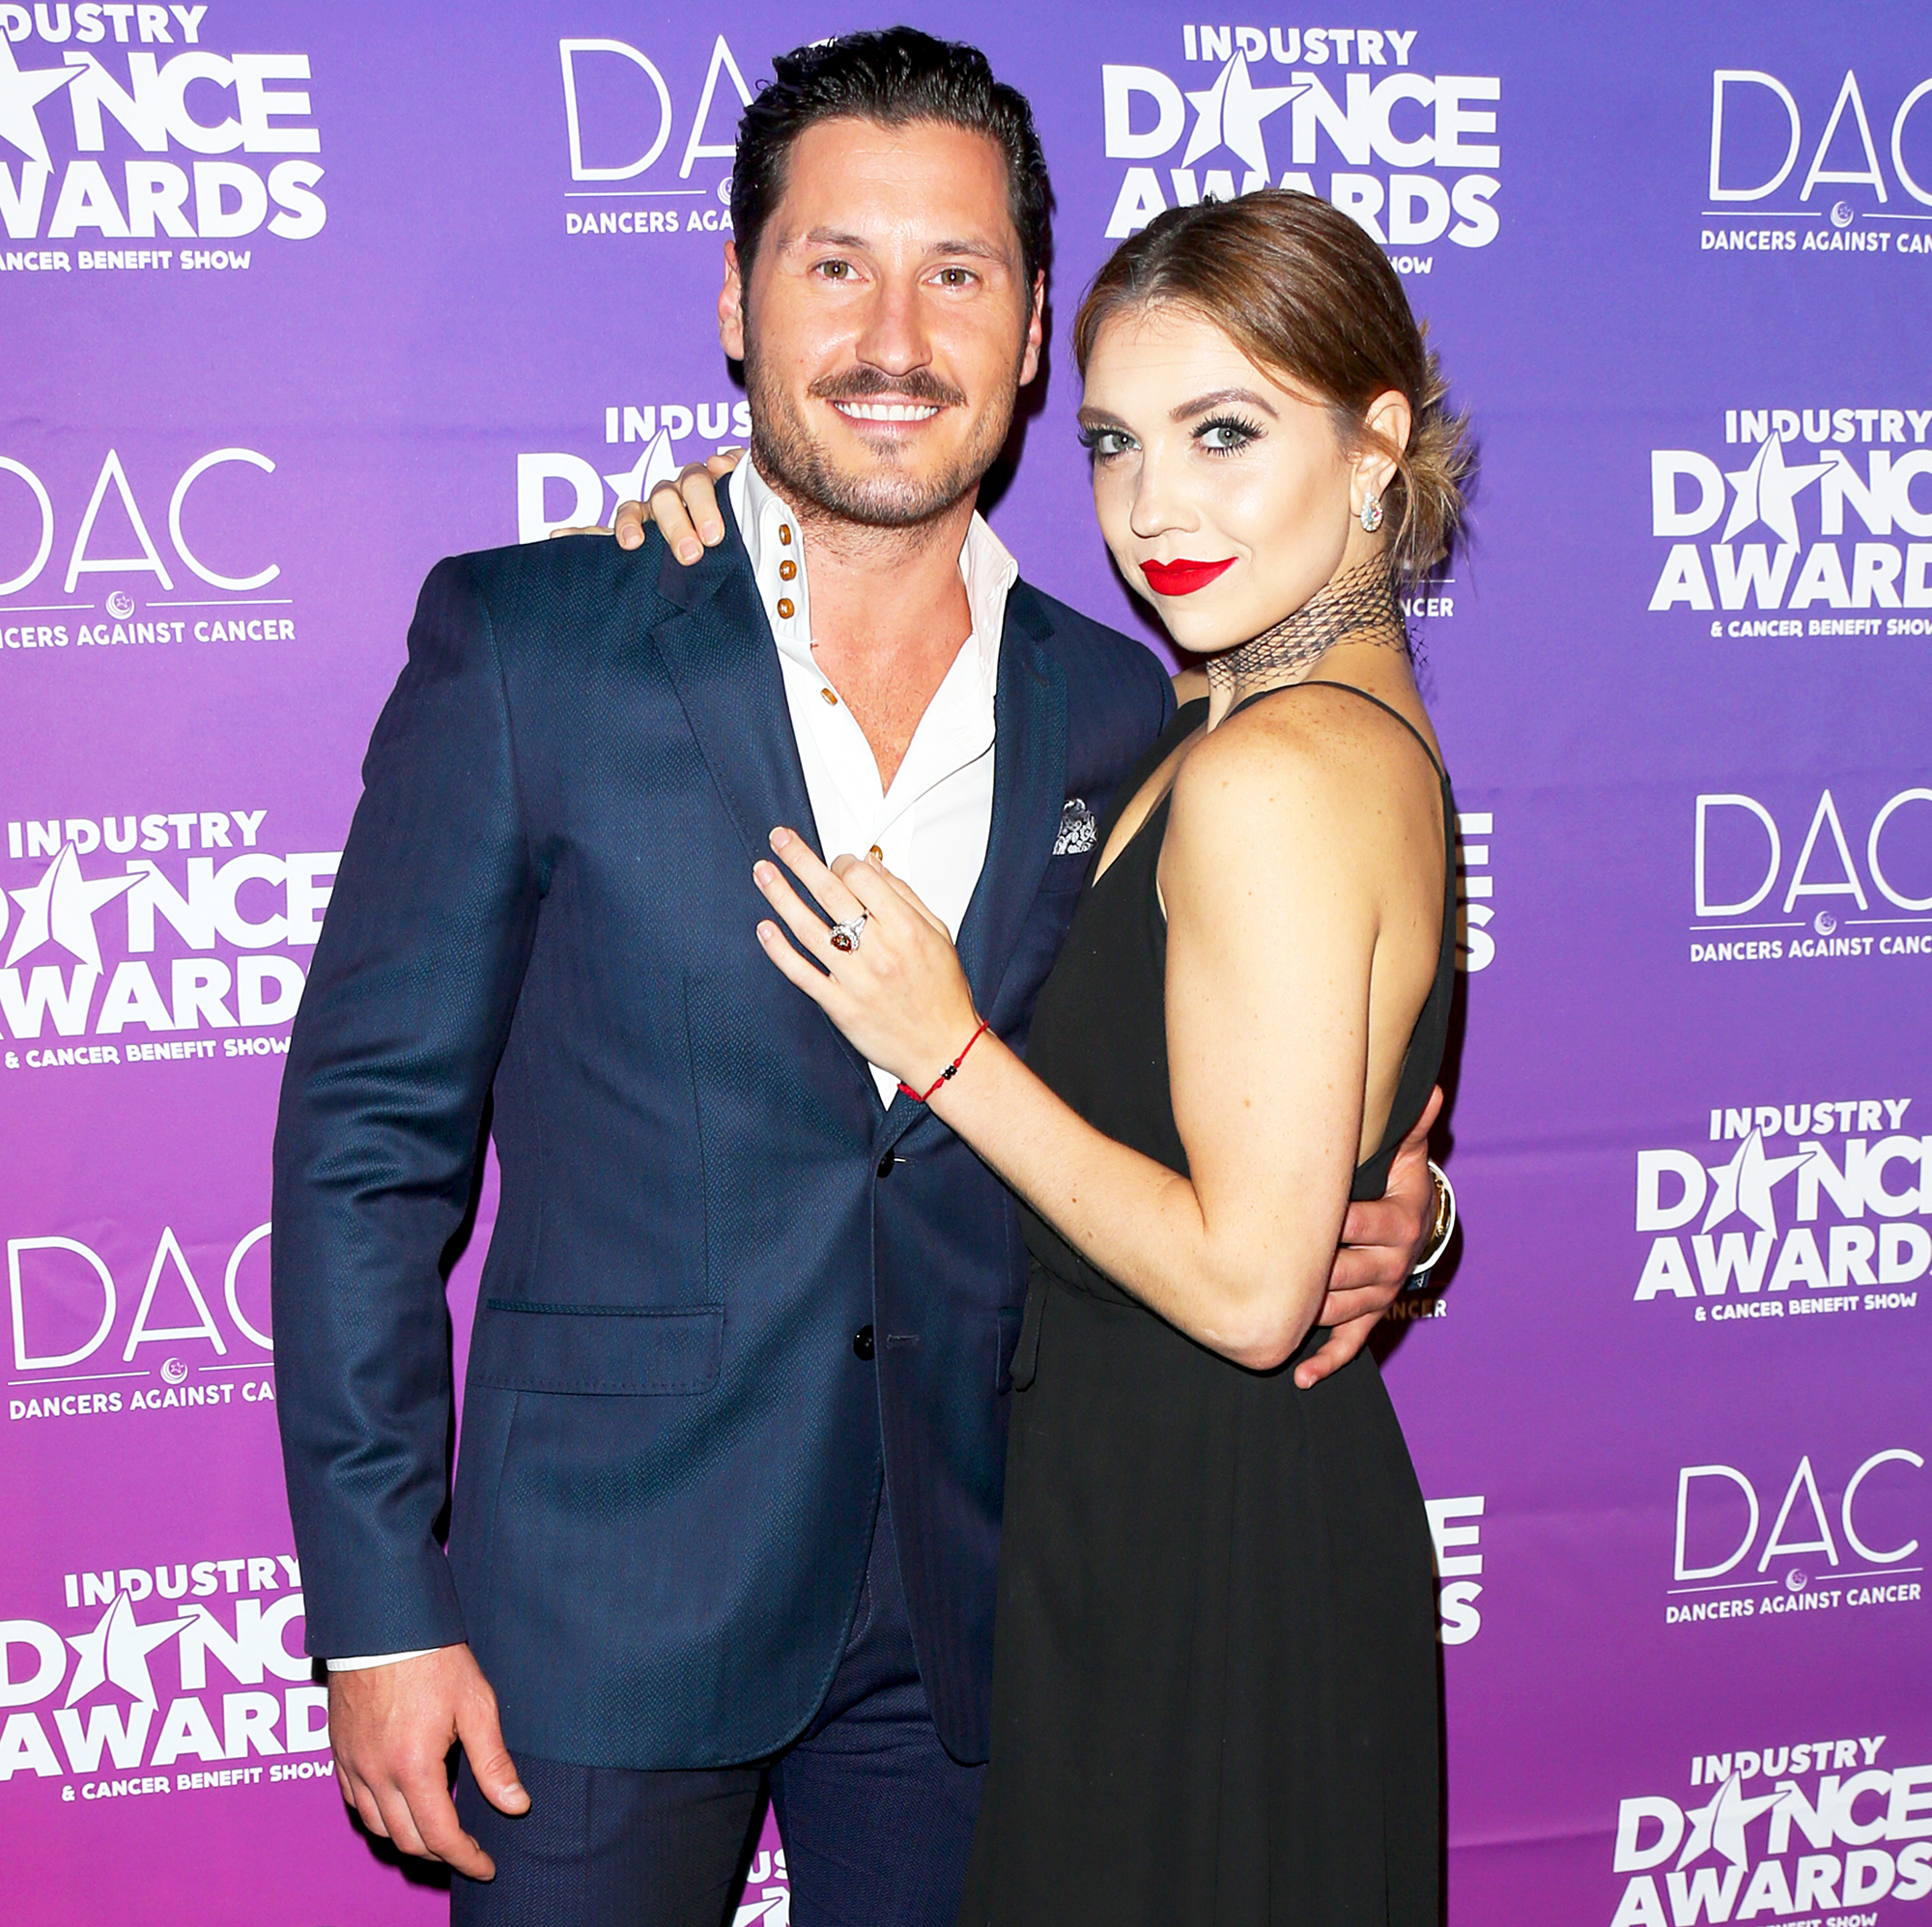 Dancing with the stars couples hookup images hd wallpaper